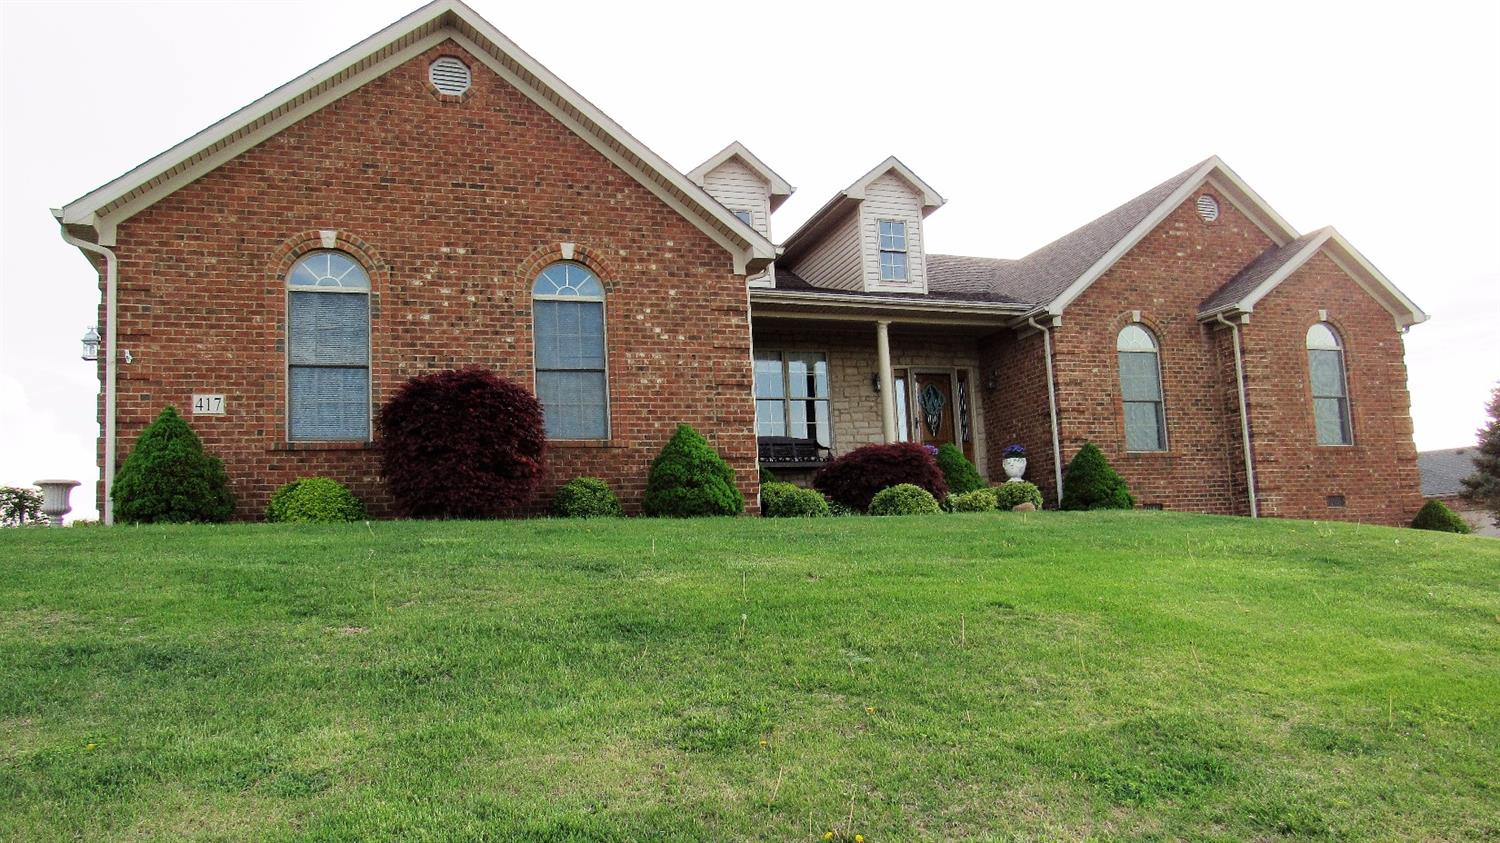 Home For Sale at 256 River Run Dr, Richmond, KY 40475